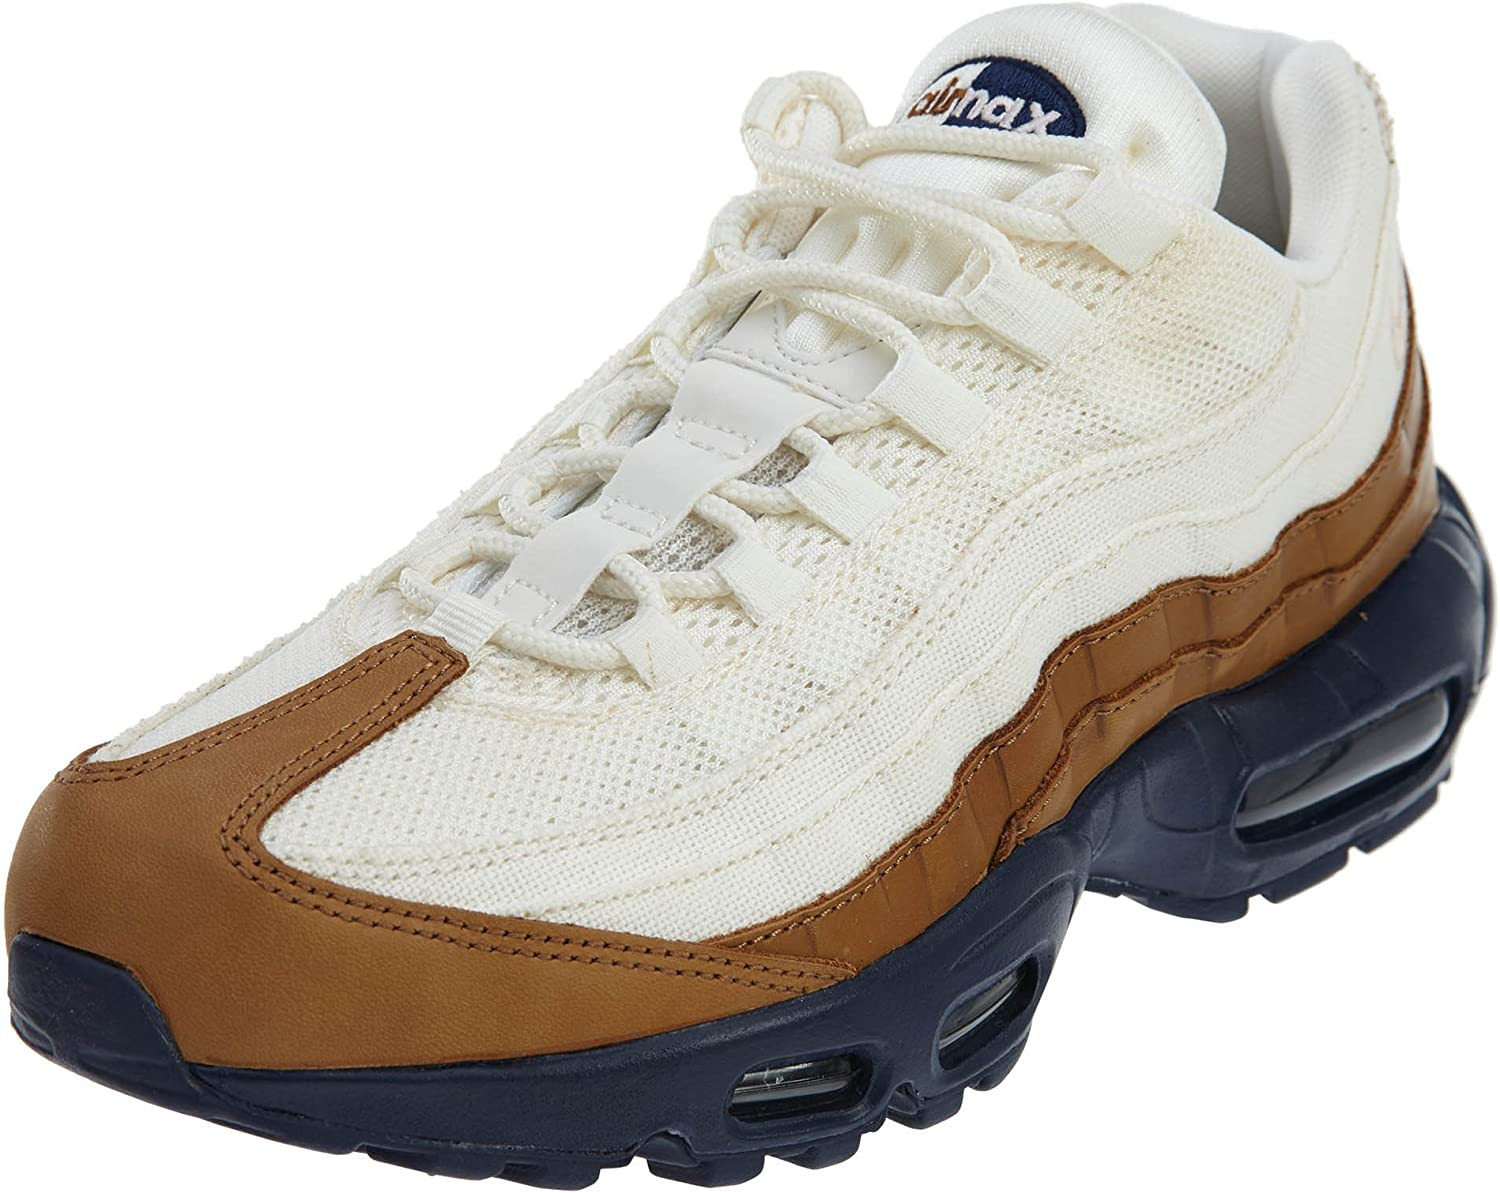 Nike AIR MAX 95 PRM Mens Sneakers